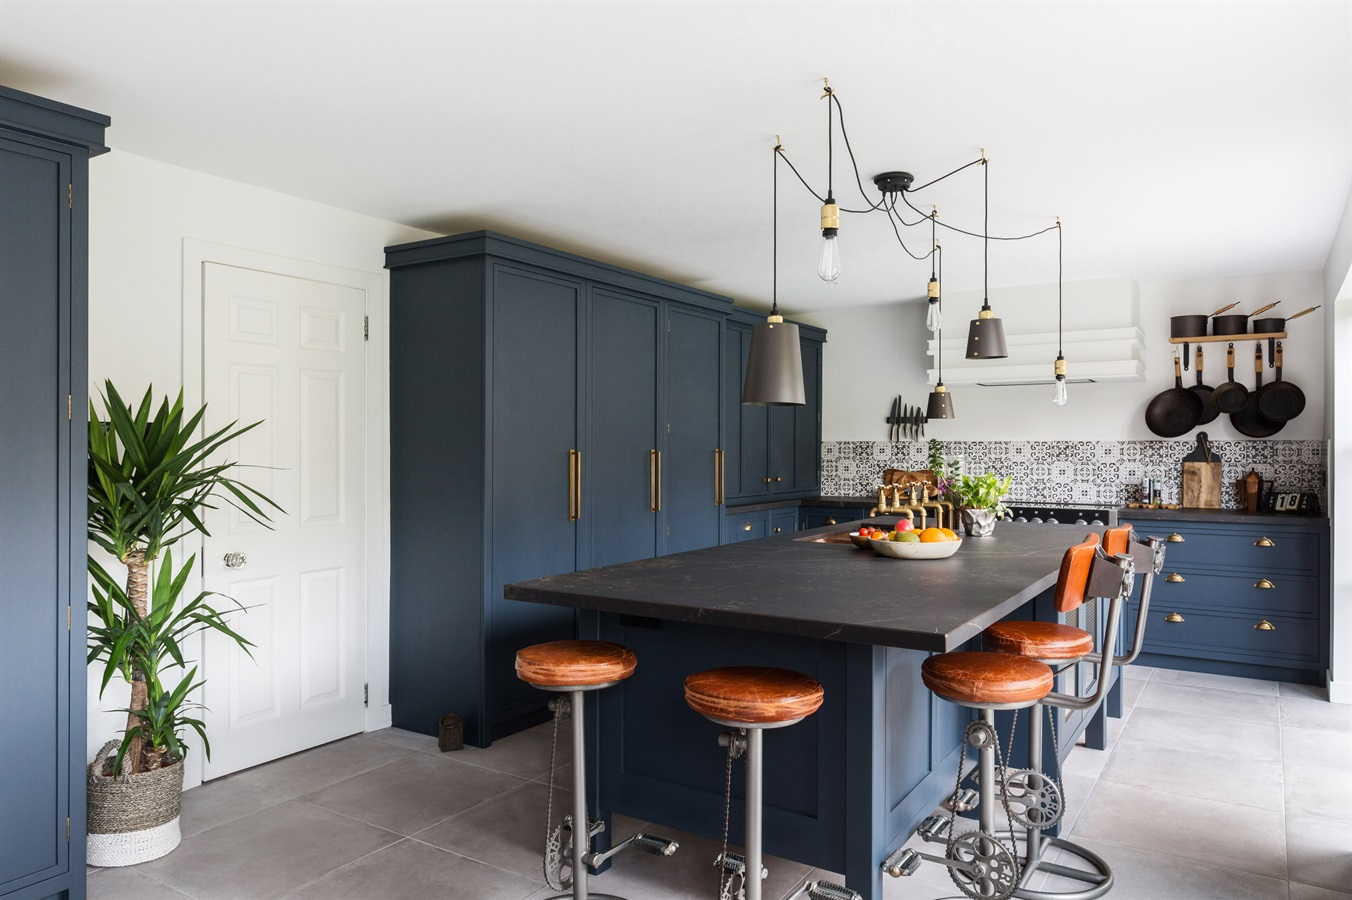 Burlanes Bespoke Decolane Kitchen - Burlanes bespoke Decolane kitchen, handpainted in 'Bond Street' by Mylands, with central kitchen island and larder.